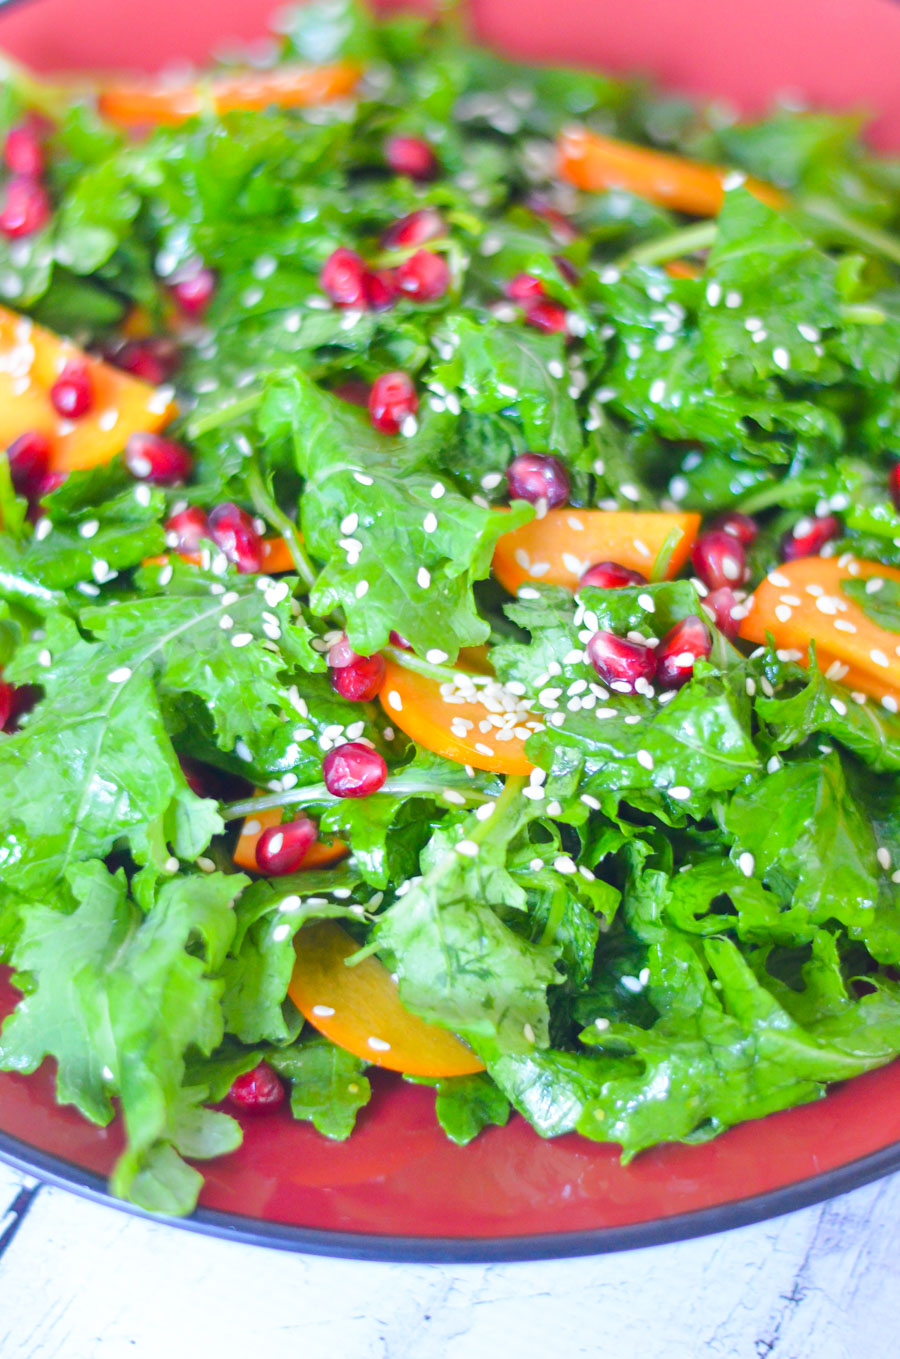 Best Salad Topping Combinations for the Perfect Salad